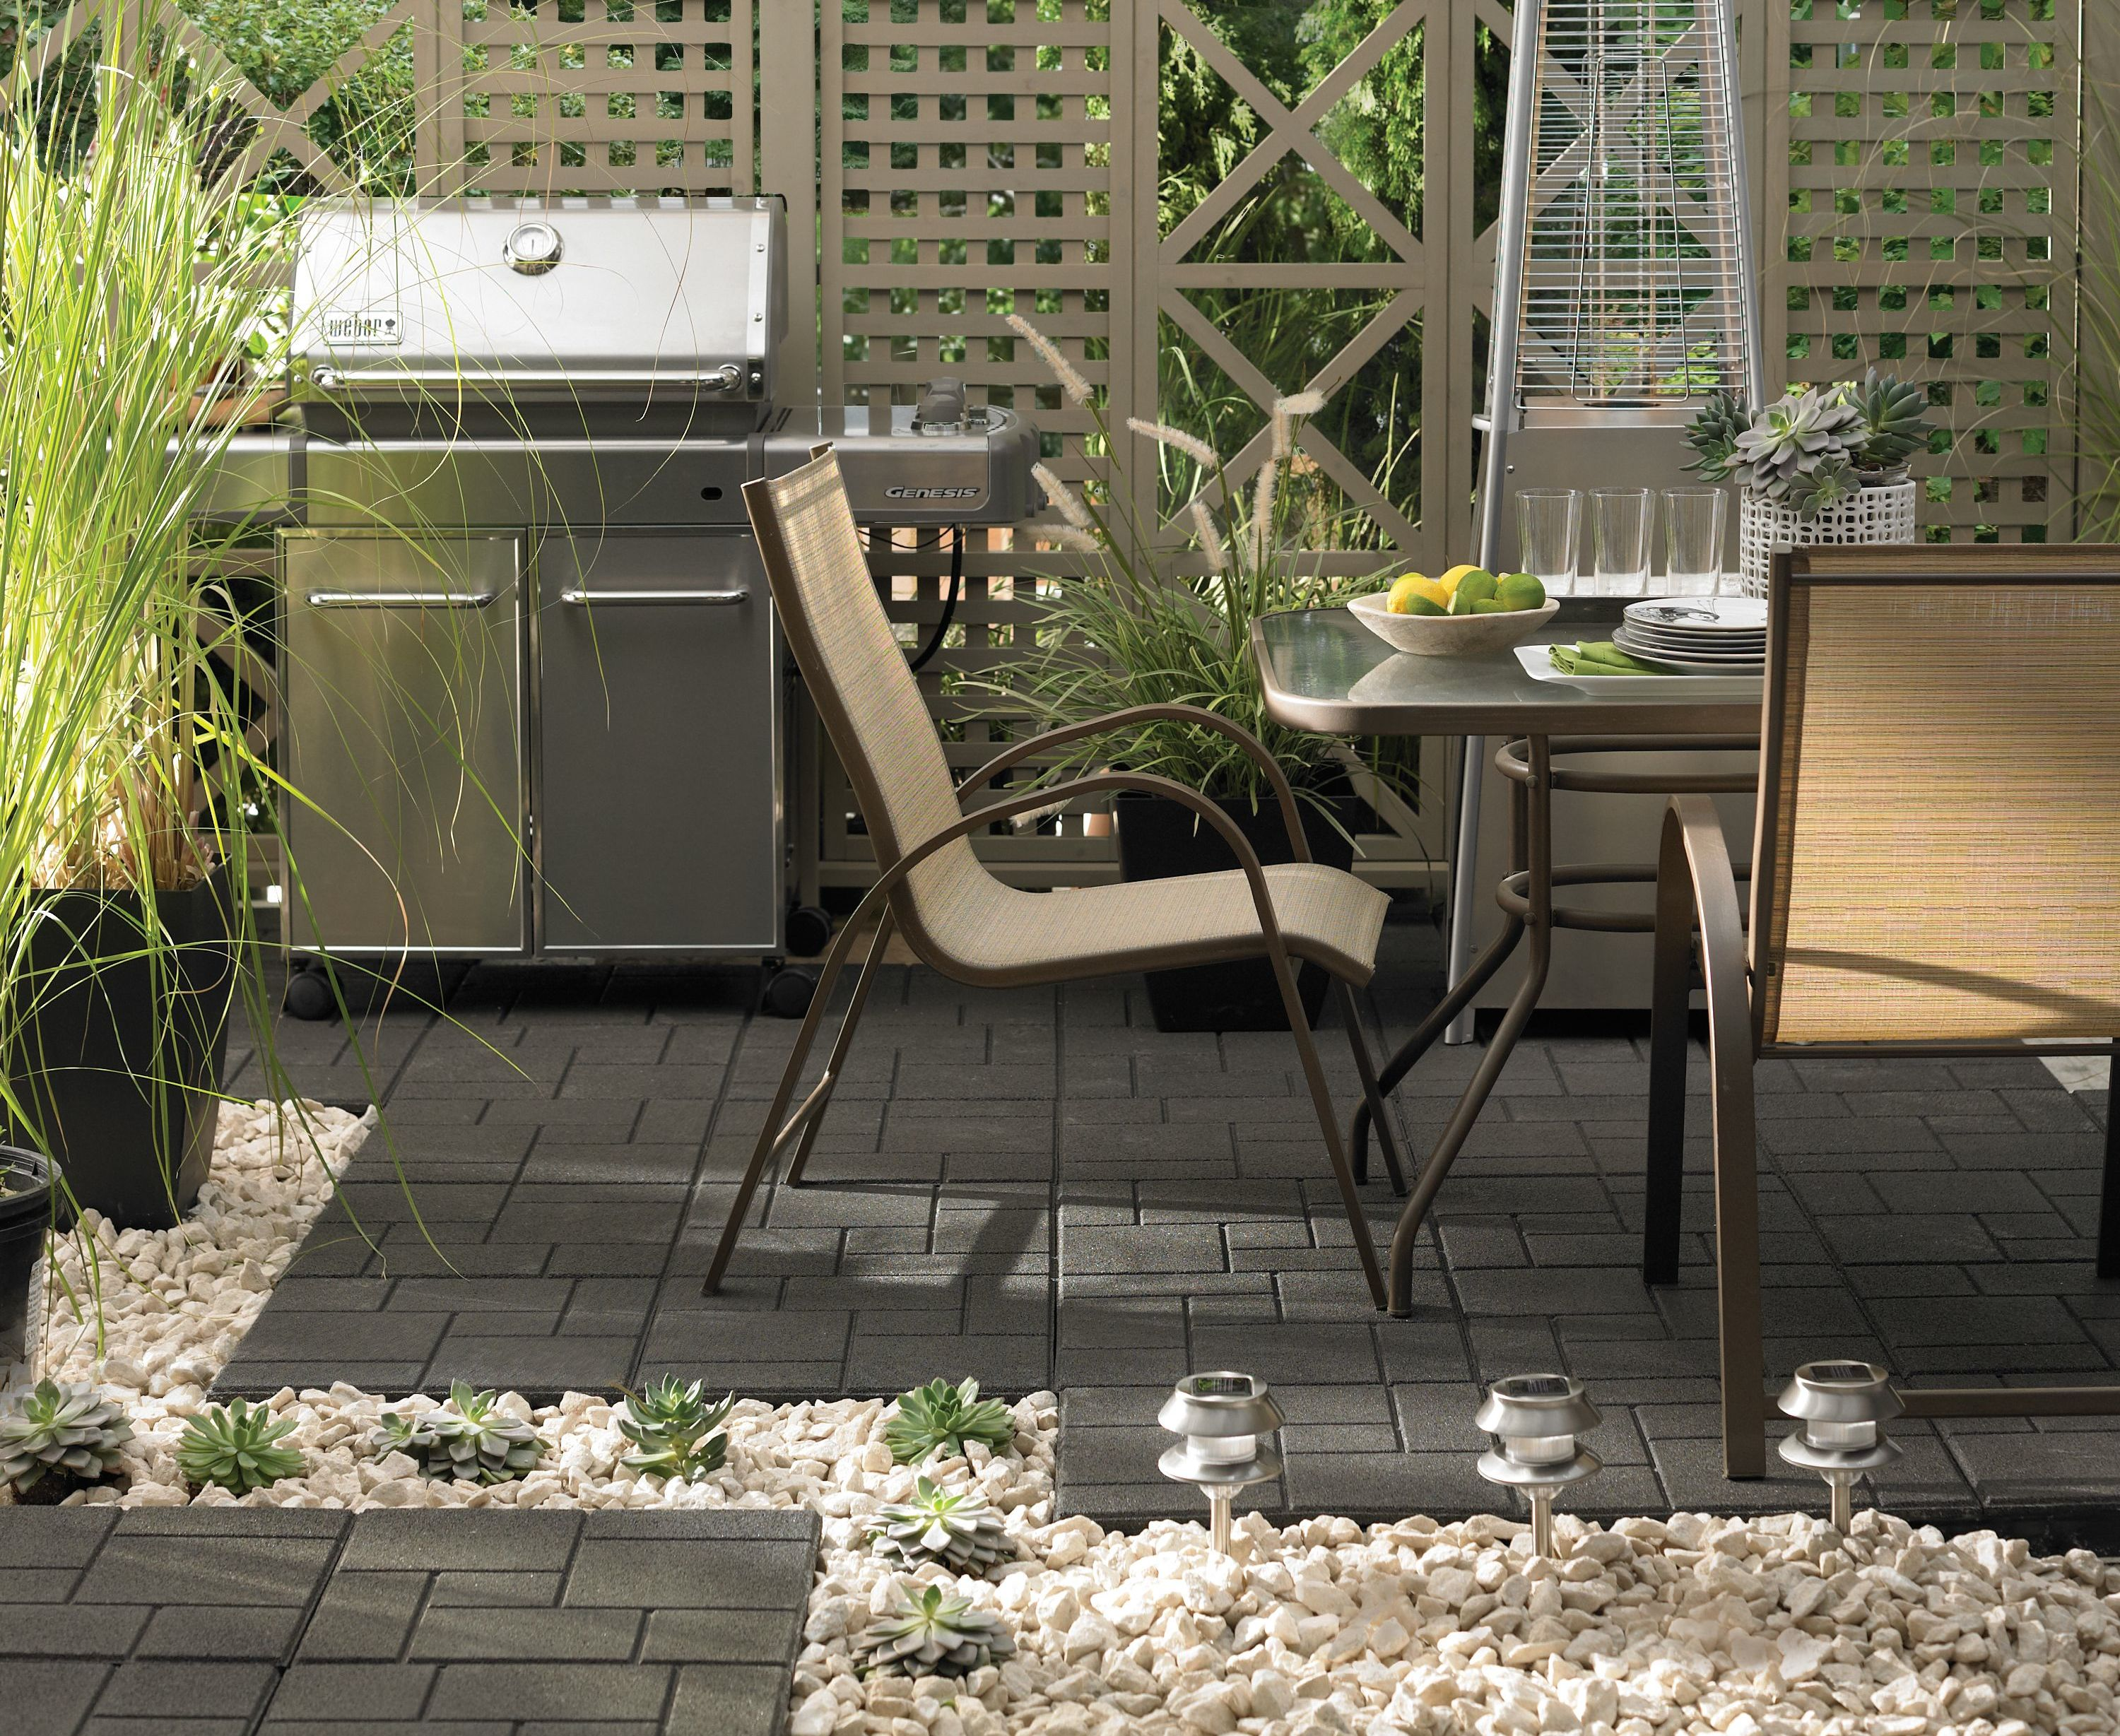 Outdoor Rubber Tiles For Patio It 39 S Play Time Recycled Rubber